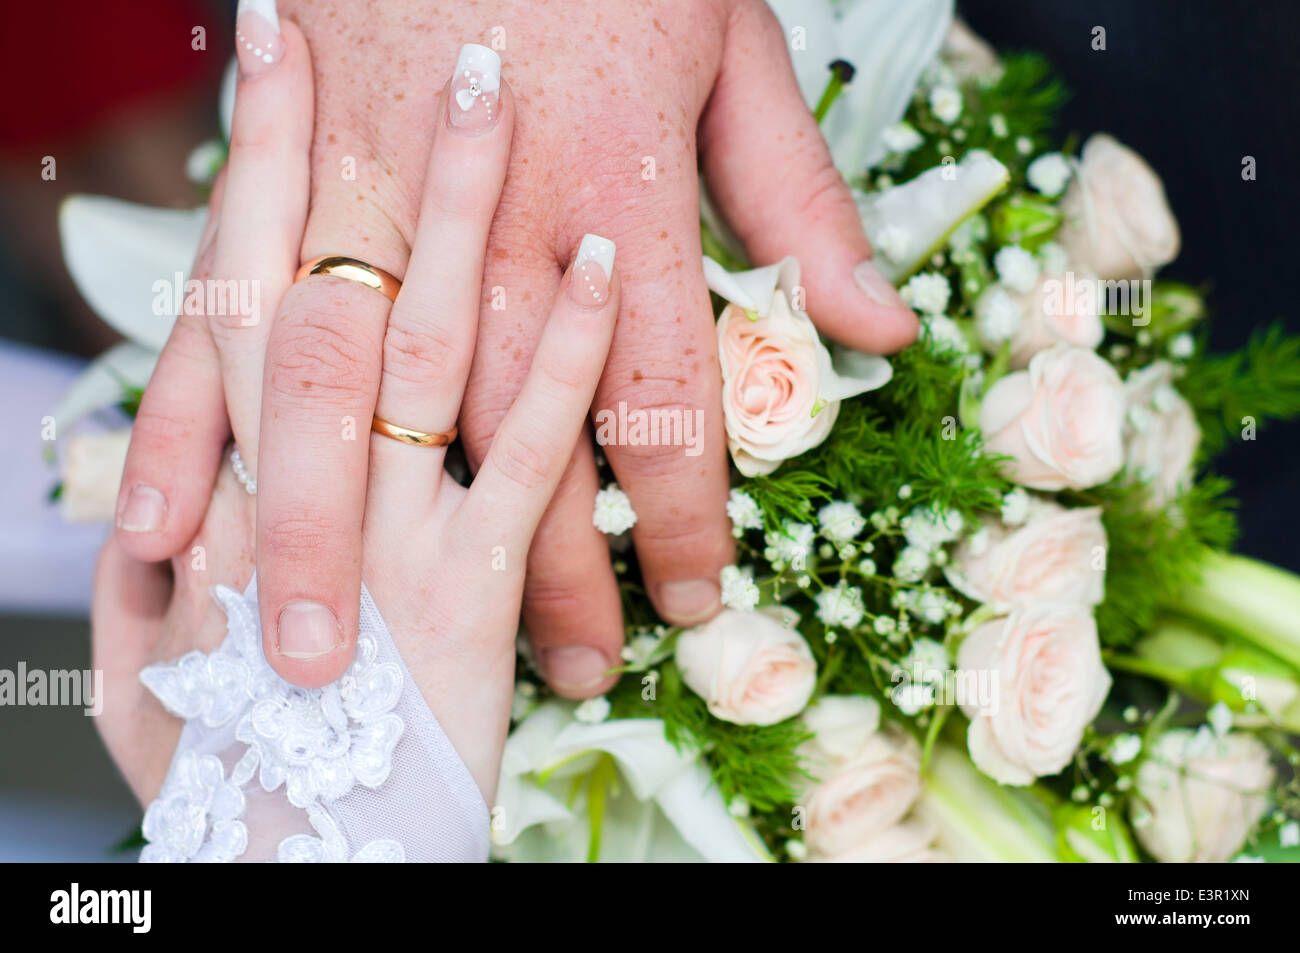 Bride Groom Show Wedding Rings Stock Photos & Bride Groom Show ...